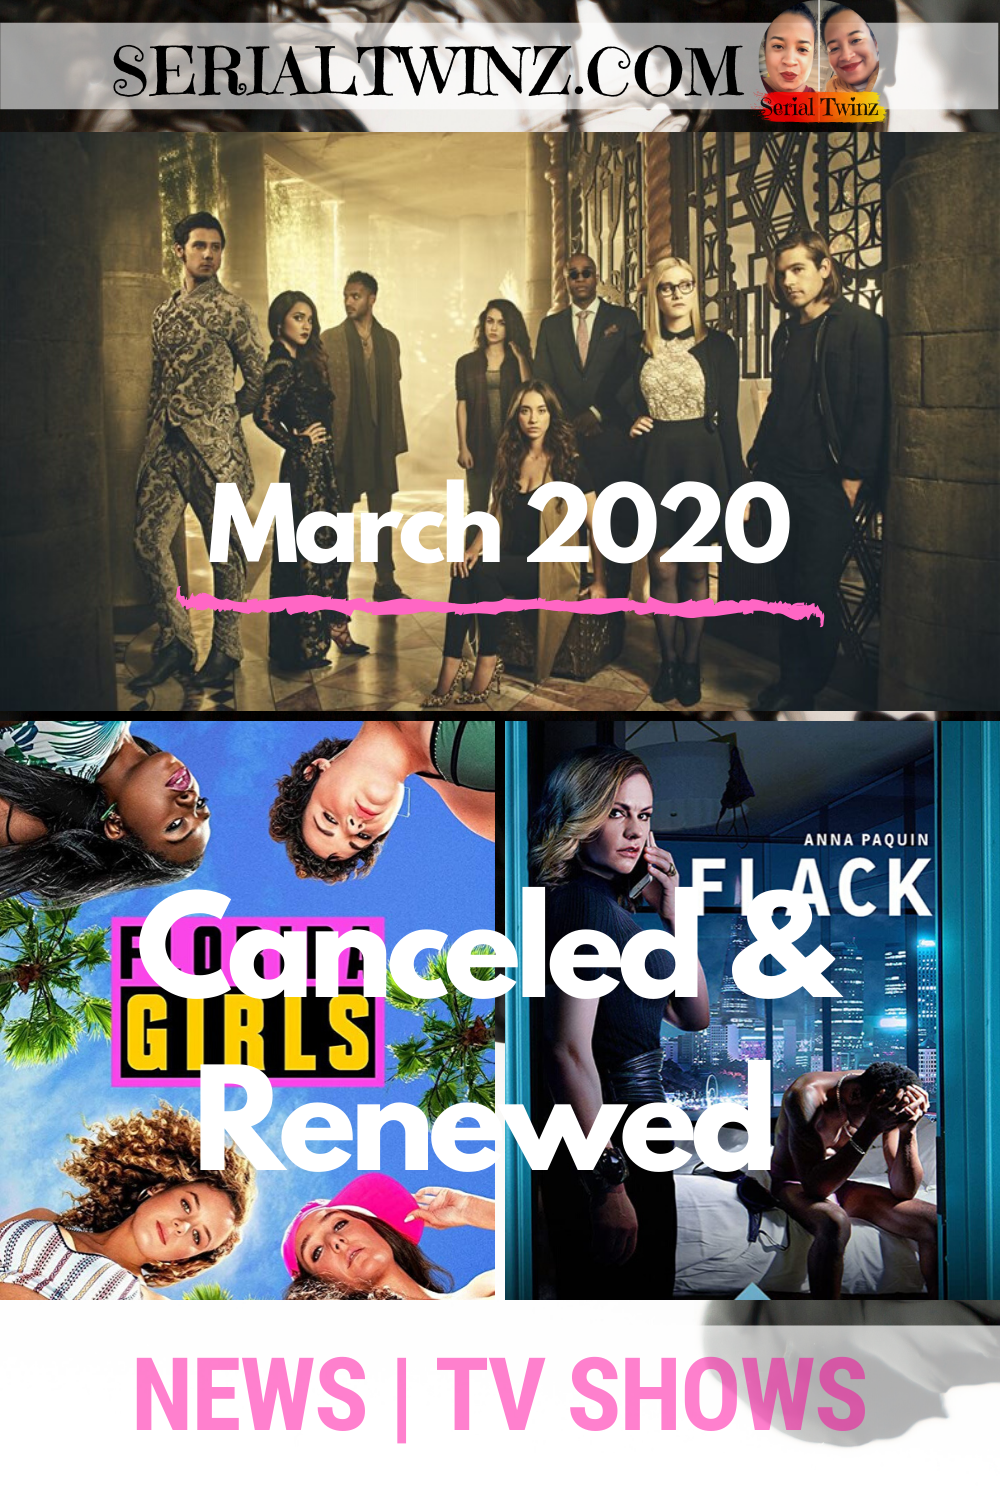 TV SHOW NEWS | Renewed and Canceled in March 2020: SerialTwinz monthly TV Series Tracker. Find out which shows are renewed and which one were canceled. For more videos and blog posts about TV shows, and other fun on TV, book and movie series, click the link in bio + Follow us | SerialTwinz.com | @Serialtwinz on social | #TVSeries #TVRenewed #TVCancelations #RenewedandCanceled #TVShows #TVNews